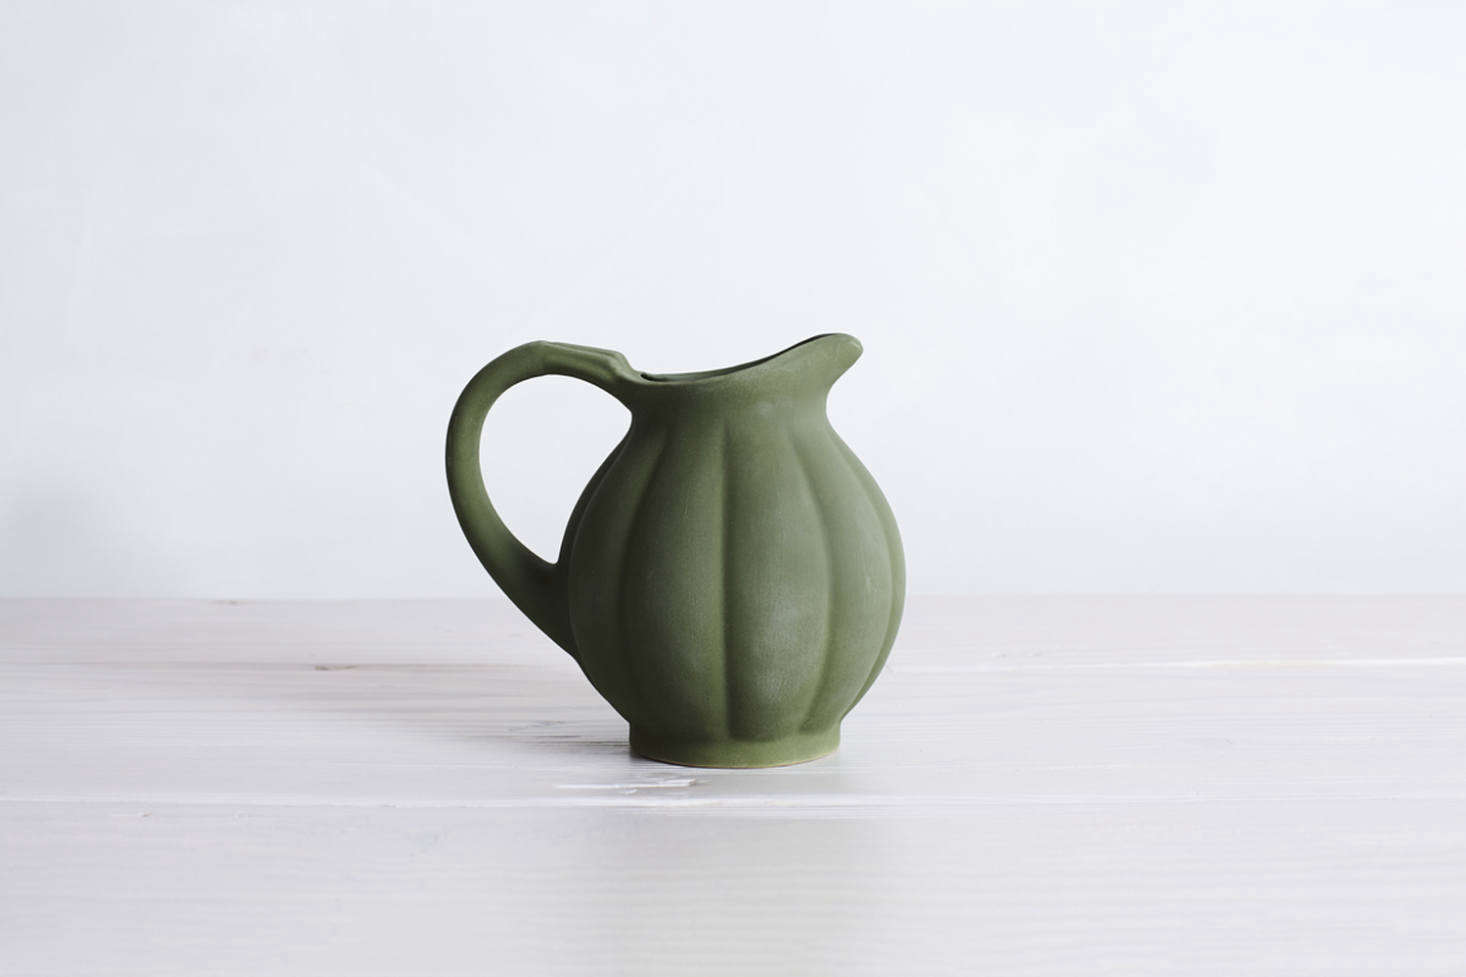 A Pumpkin PitcherbyFrench brand Manufacture de Digoin has a matte green glaze and is for £85 at SCP and also can be found at Nickey Kehoe (contact for restocking information).